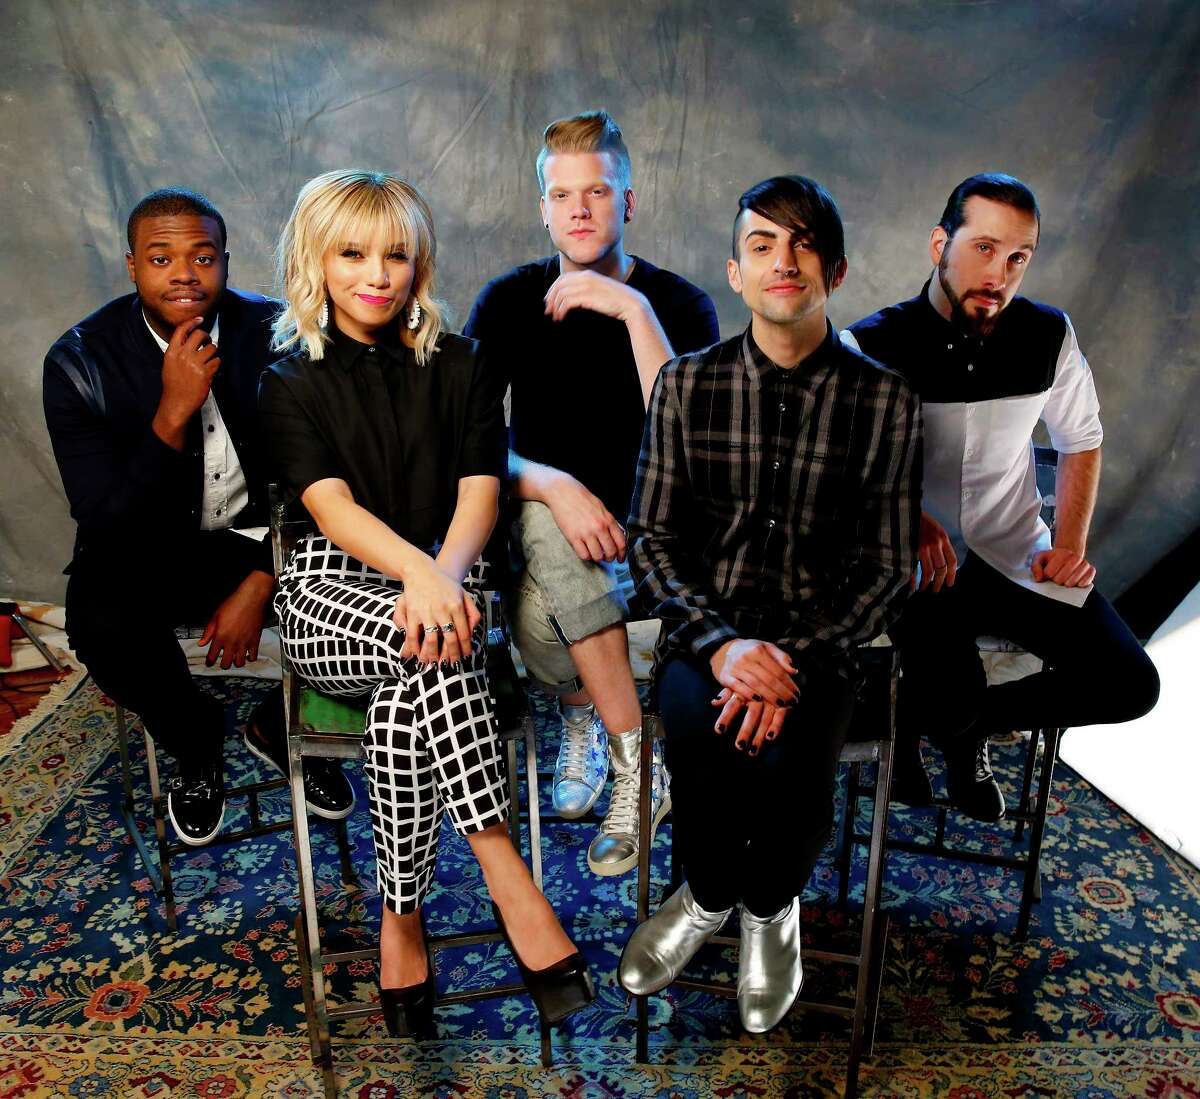 """In this Sept. 4, 2015, photo, Kevin Olusola, from left, Kristie Maldonado, Scott Hoying, Mitch Grassi and Avi Kaplan of the group Pentatonix pose for a portrait at Sony Music Nashville in Nashville, Tenn. Pentatonix, Macklemore and Ryan Lewis, Nick Jonas and OMI will be ringing in the New Year from Hollywood for """"Dick Clark's New Year's Rockin' Eve."""" ABC announced on Tuesday, Dec. 15, the final performers for the Billboard Hollywood Party, which will also include Alessia Cara, DNCE and Nathan Sykes."""